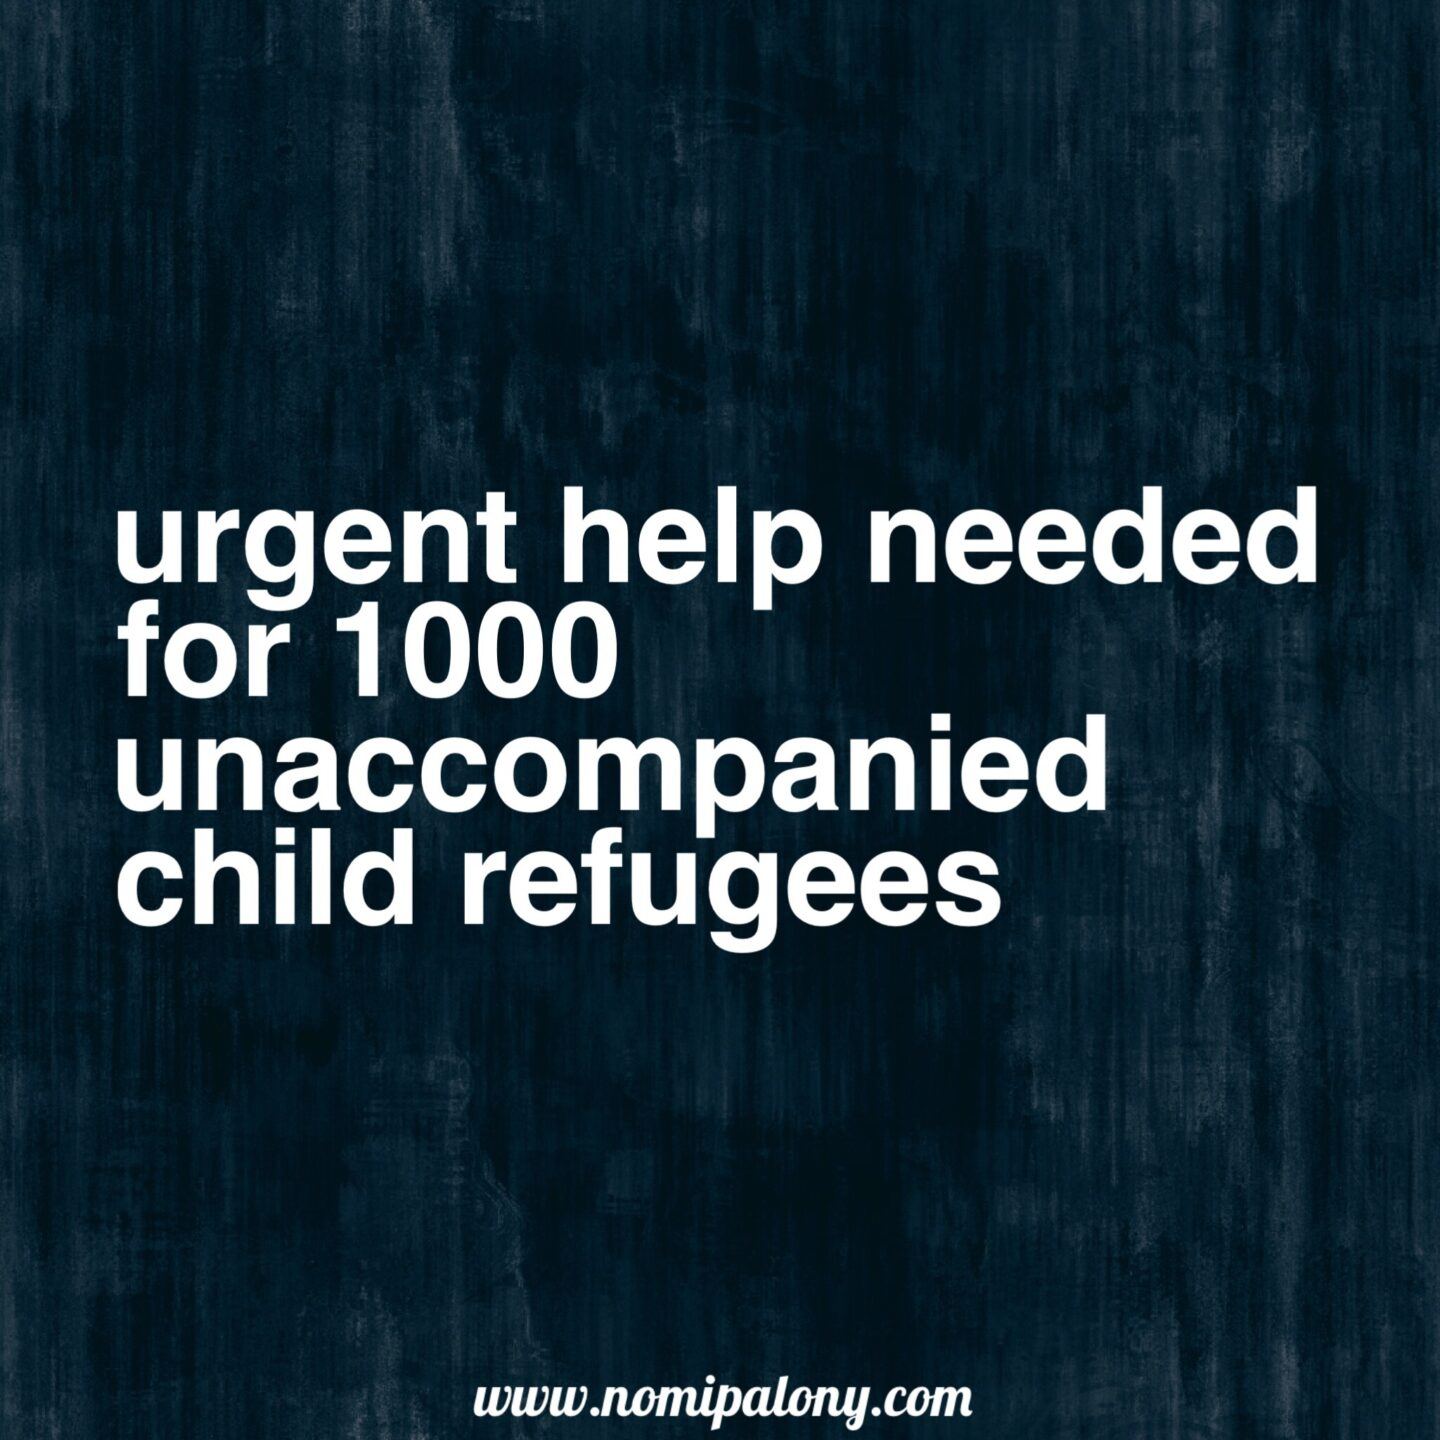 Urgent help needed for 1000 unaccompanied child refugees